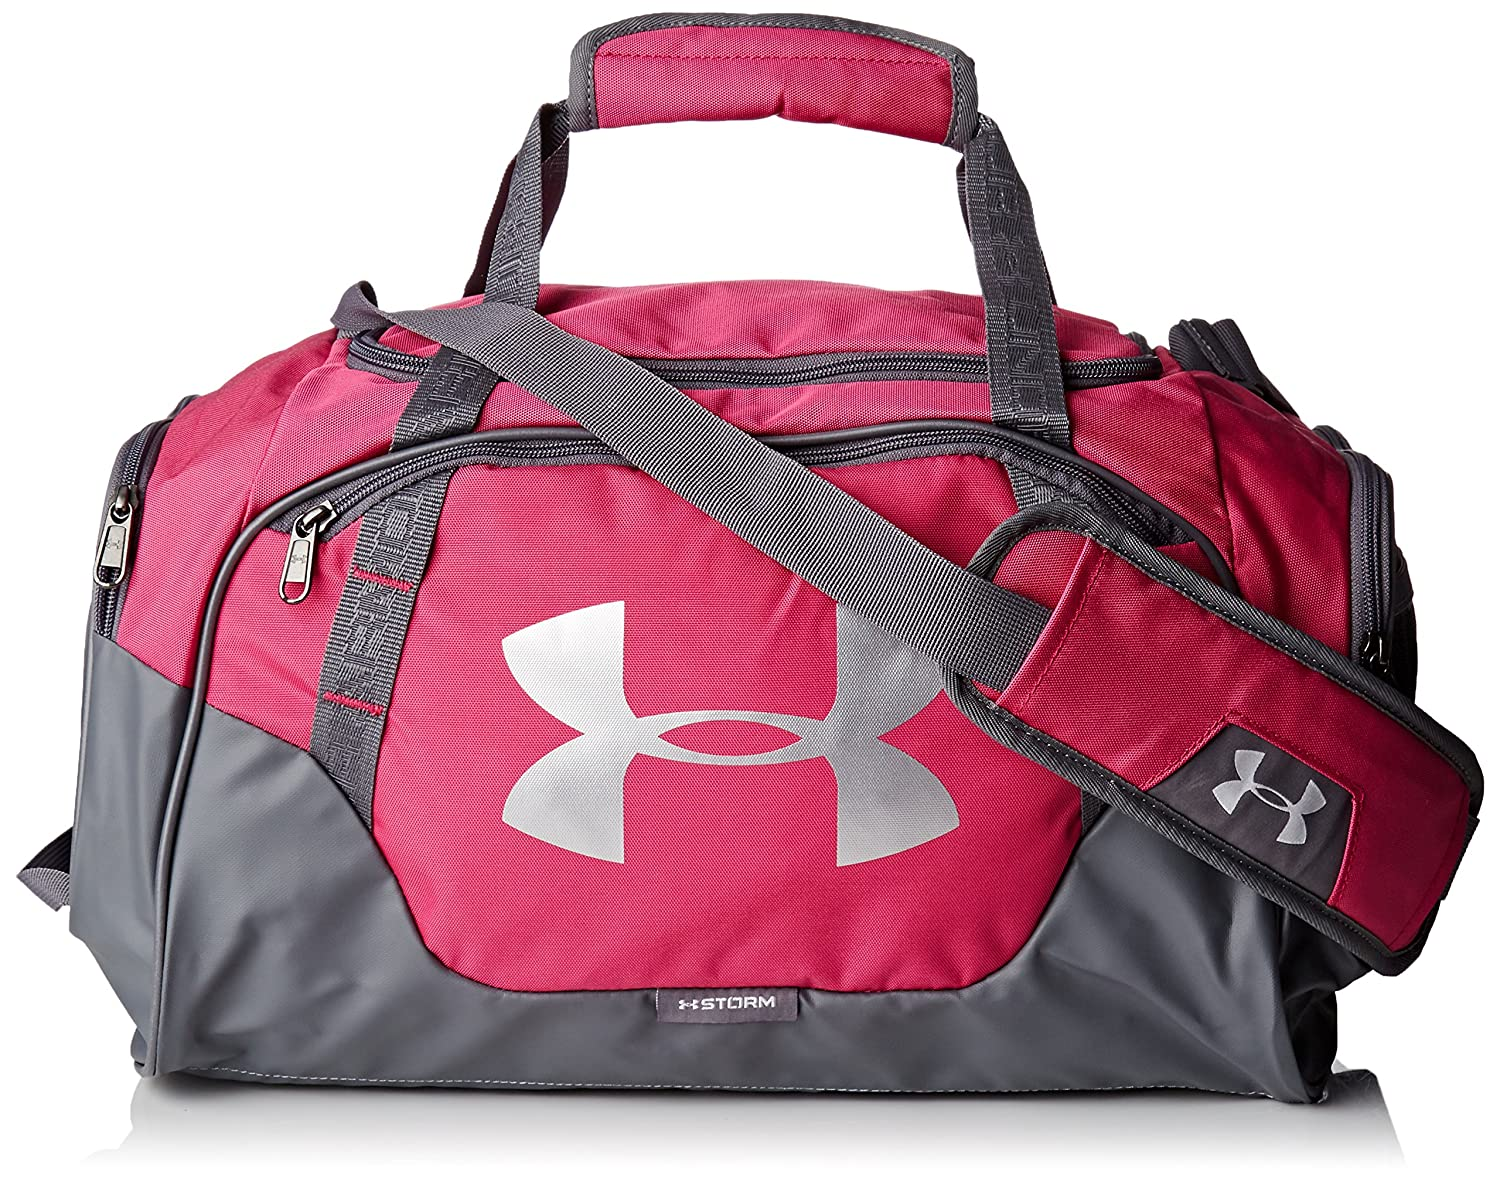 Under Armour UA Undeniable – Bolsa para viaje de 3.0, color rosa, tamaño 32 L (51x26x24 cm) 1261834